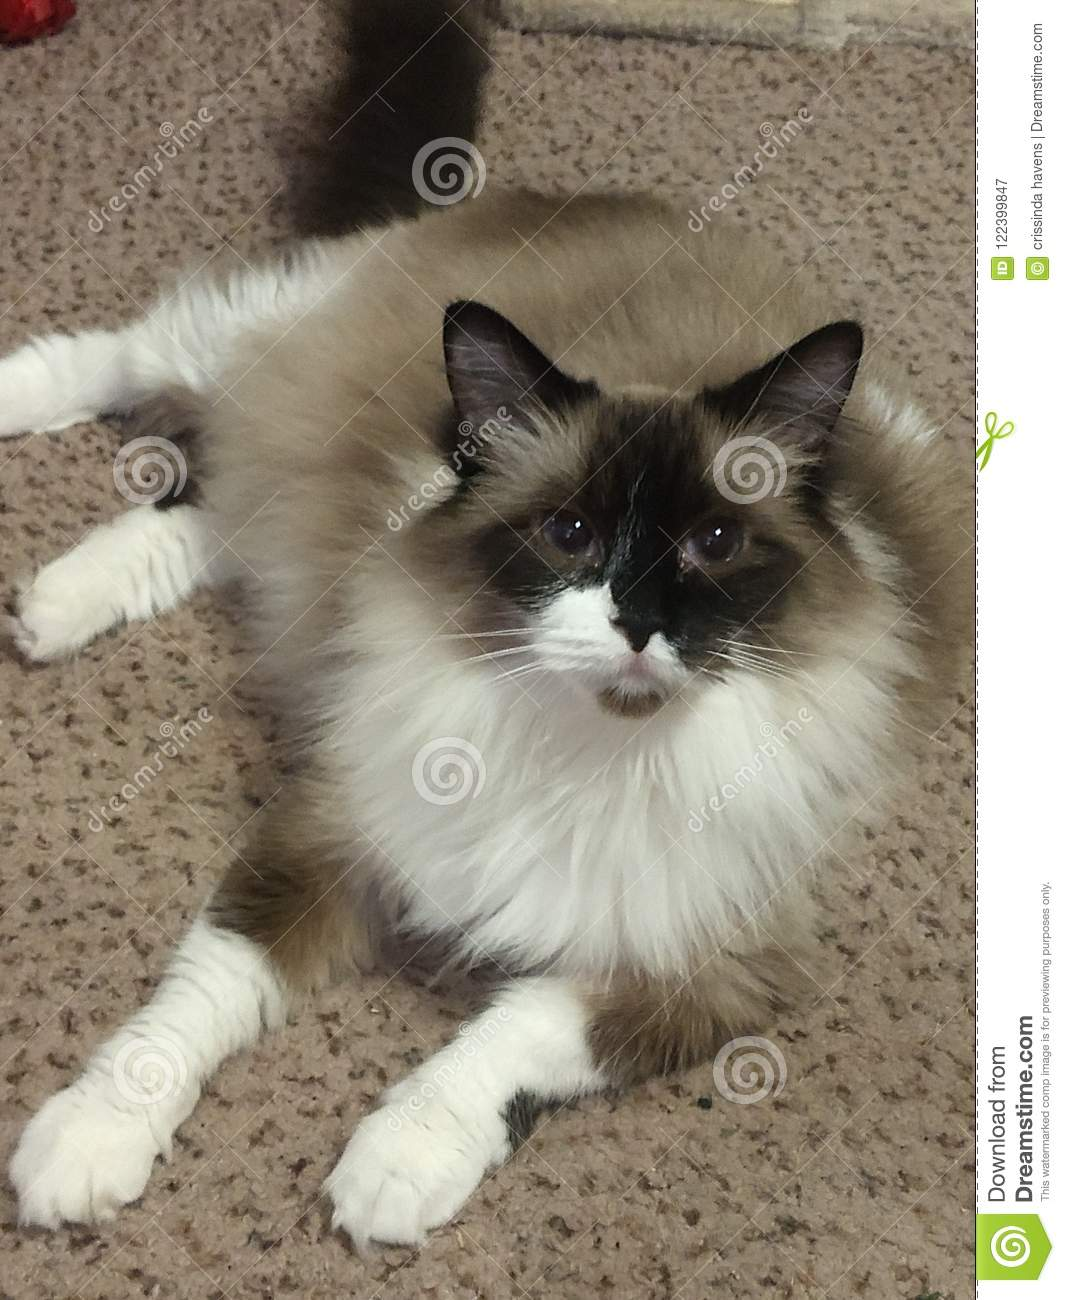 Worlds Most Beautiful Cat Stock Image Image Of Ragdoll 122399847